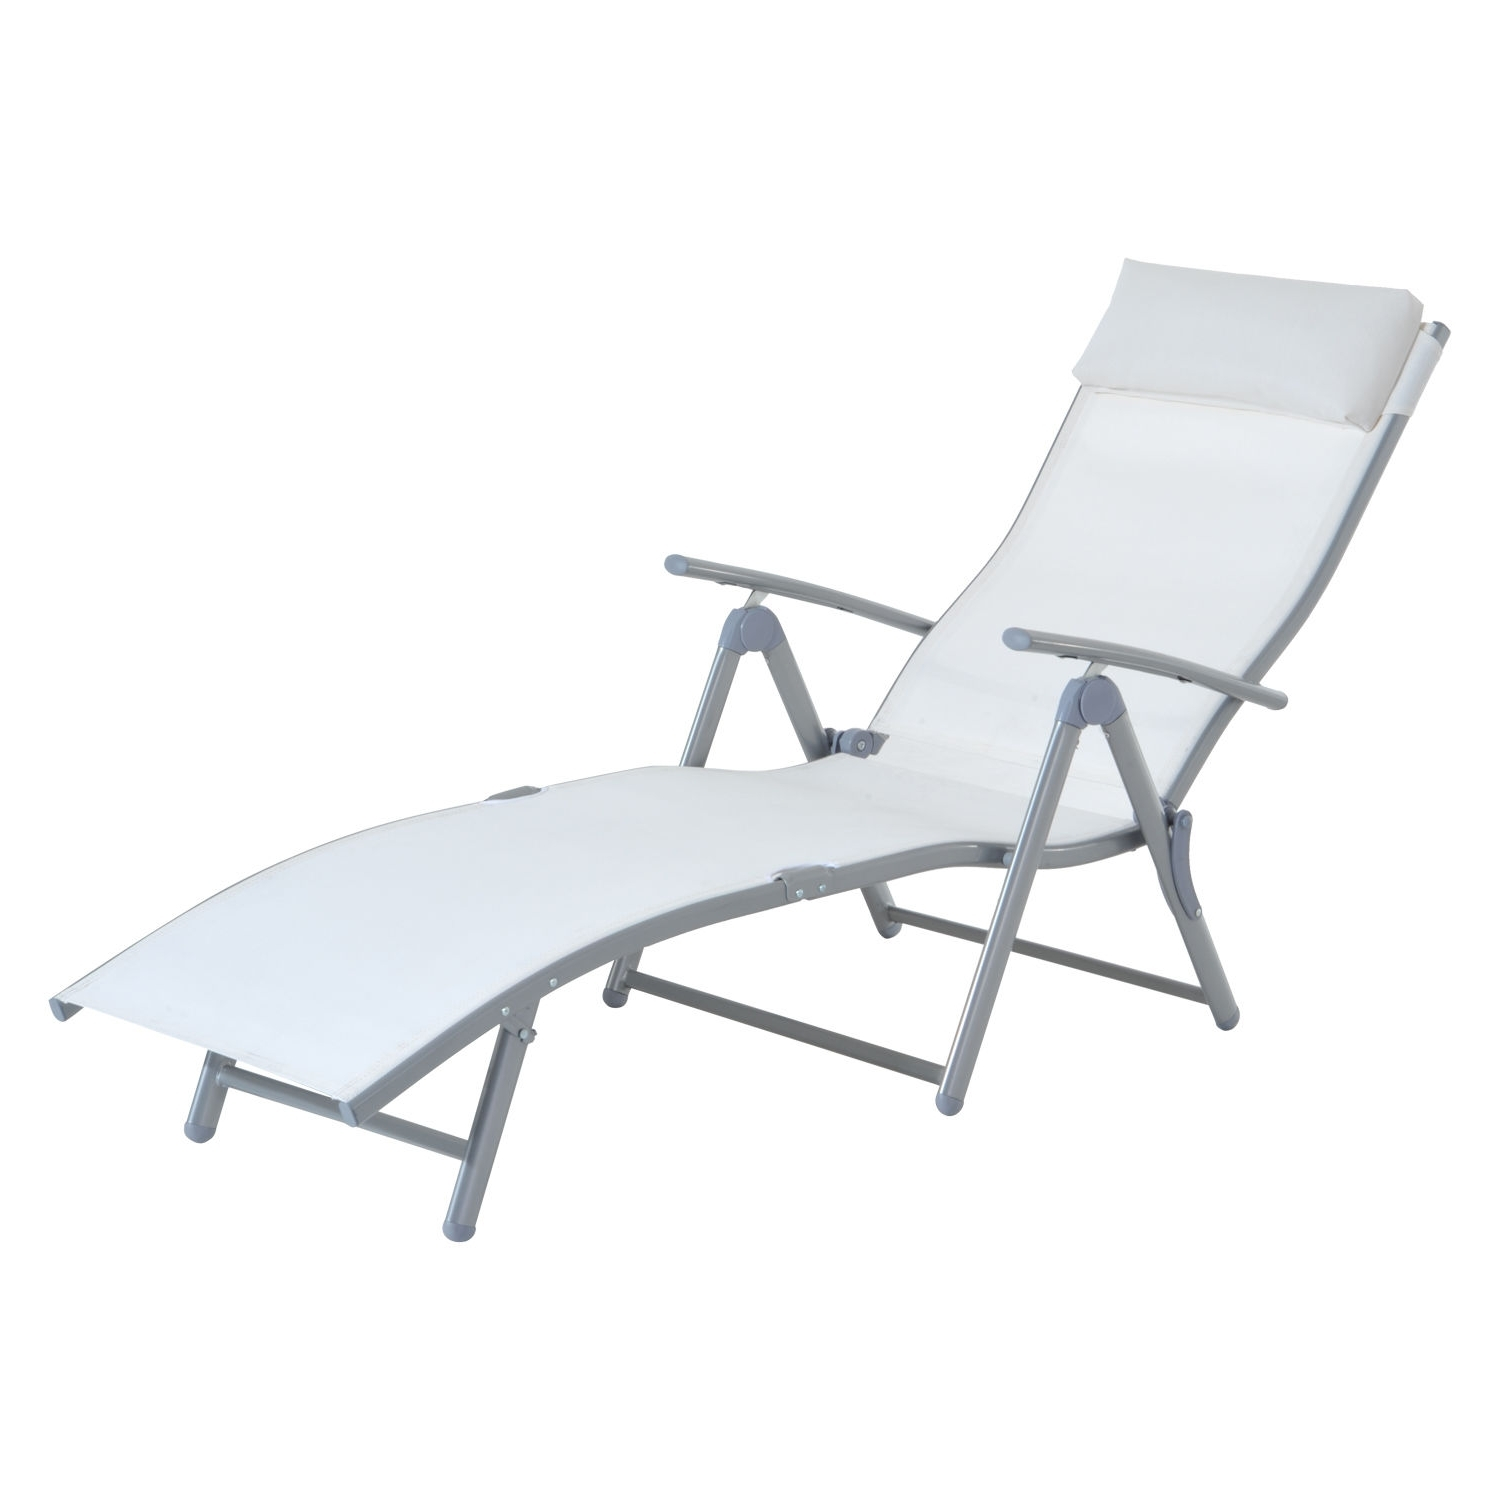 Outdoor : Lowes Chaise Lounge Indoor Outdoor Chaise Lounge Chairs Within Trendy Vinyl Outdoor Chaise Lounge Chairs (View 7 of 15)